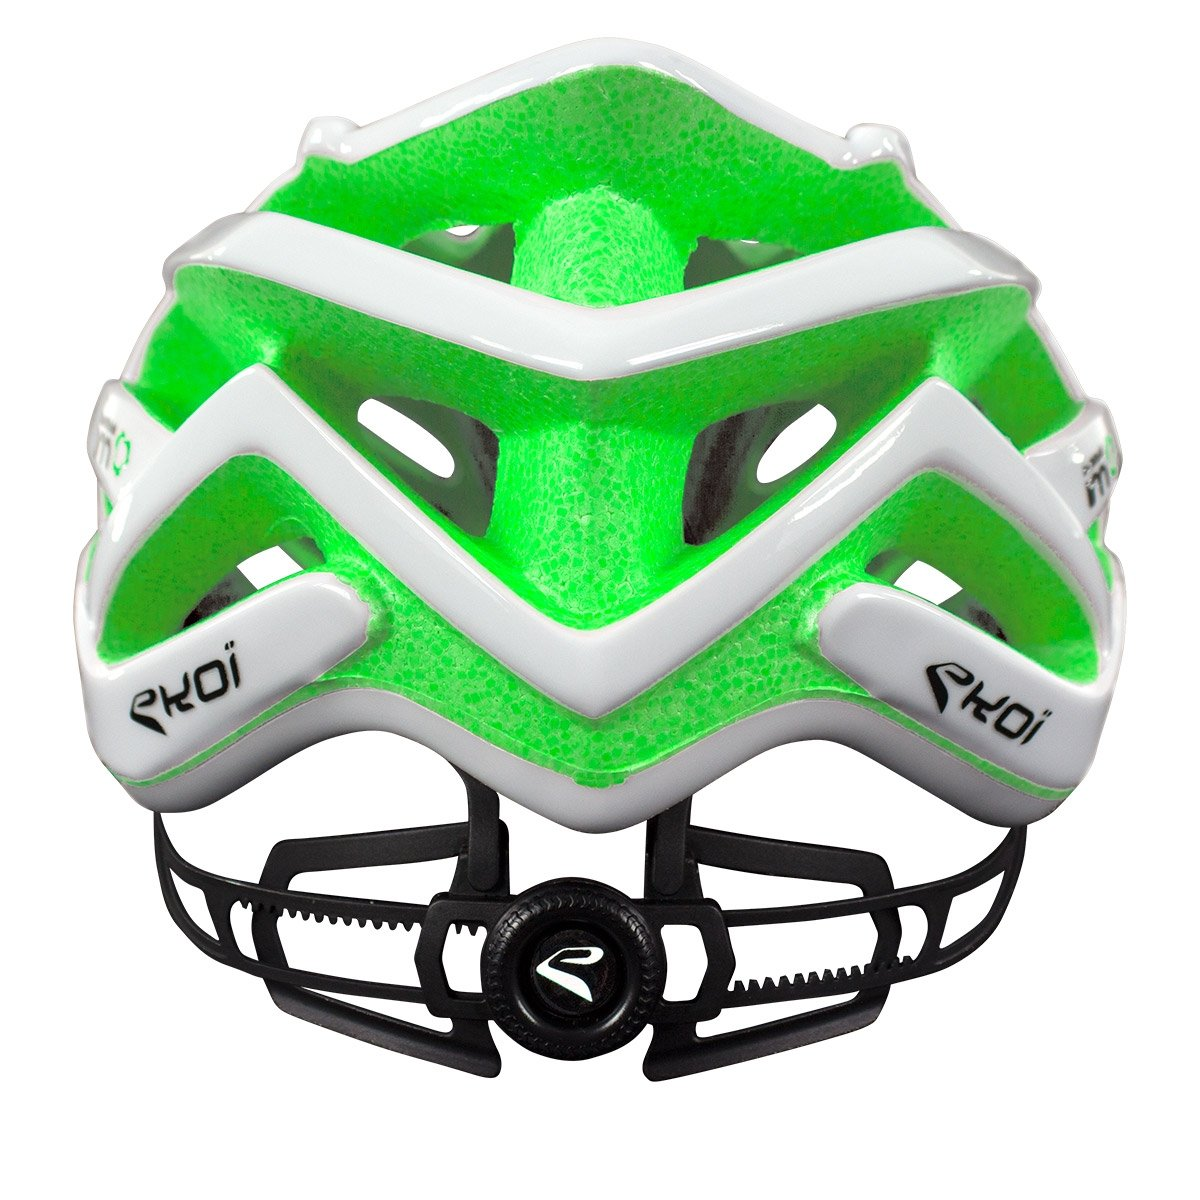 EKOI CORSA LIGHT WHITE GREEN HELMET